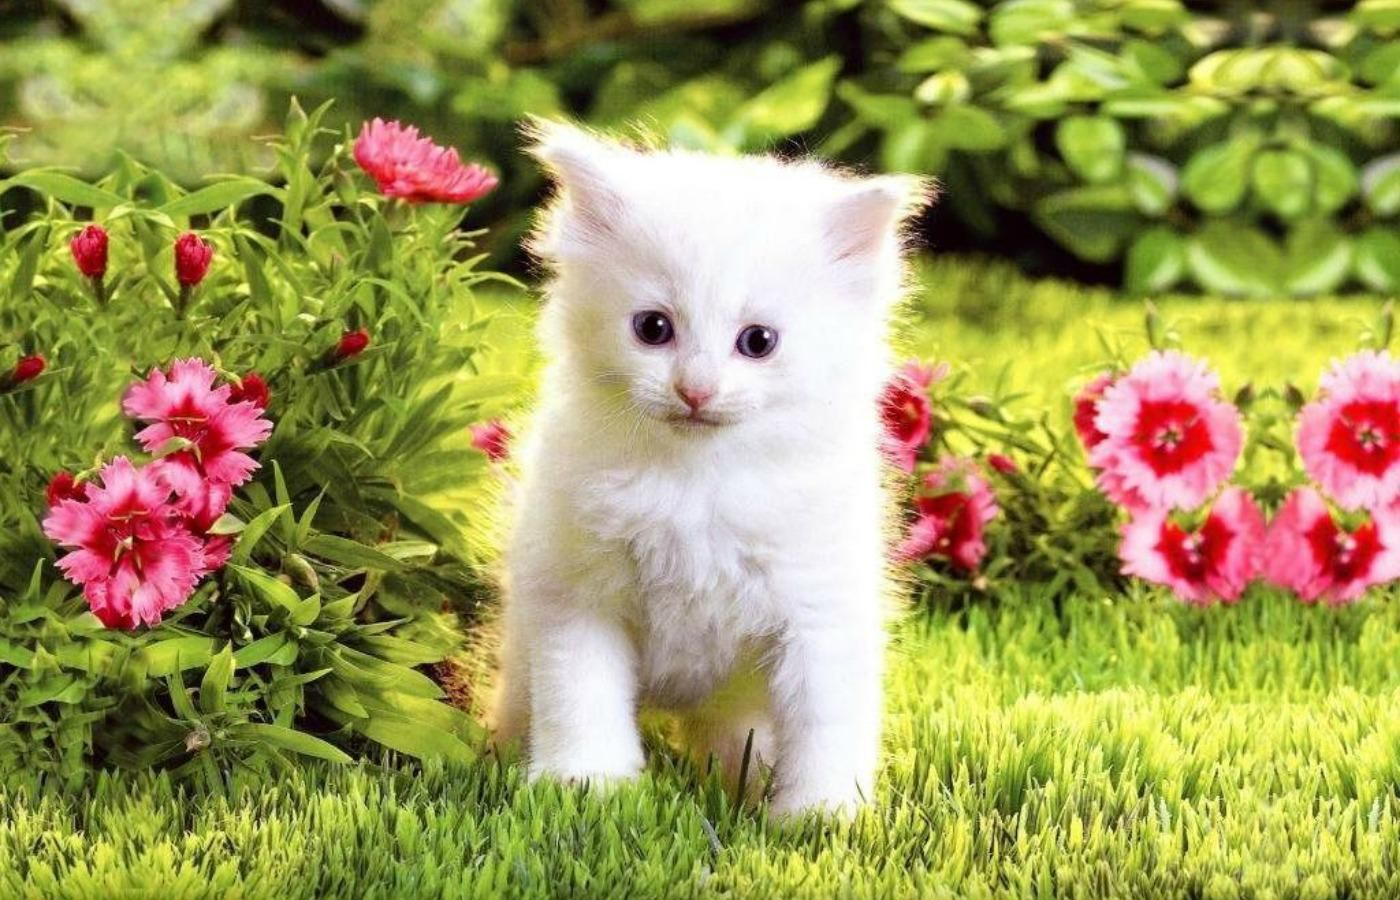 wallpaper of cats and kittens | cats | pinterest | cat wallpaper